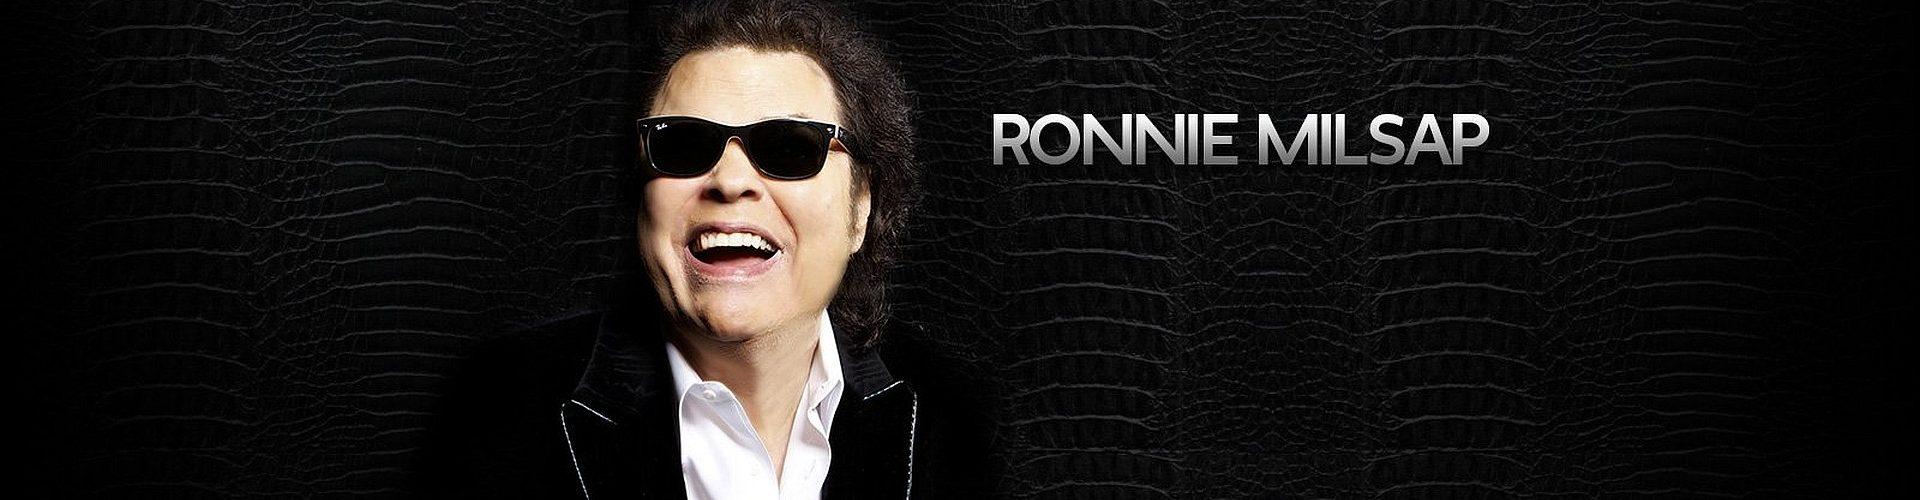 Ronnie Milsap Returns to Branson!